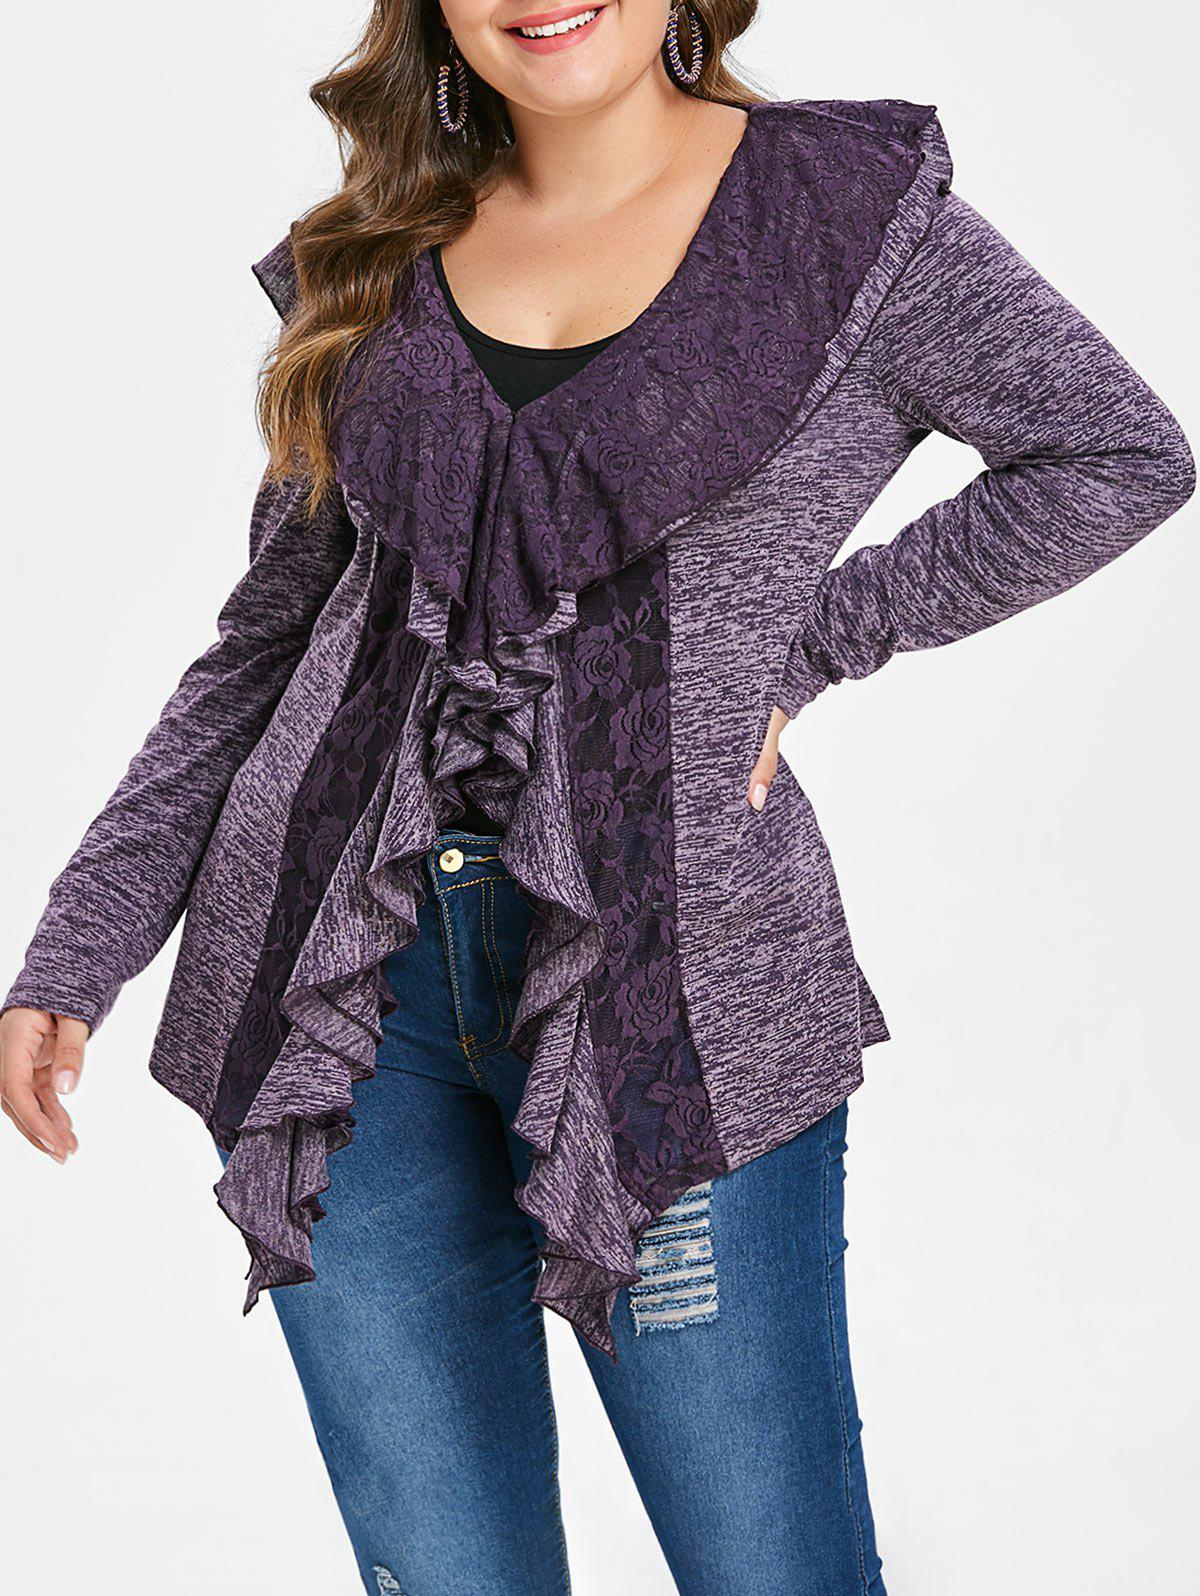 Plus Size Lace Trim Ruffle V Neck T-shirt - PURPLE L